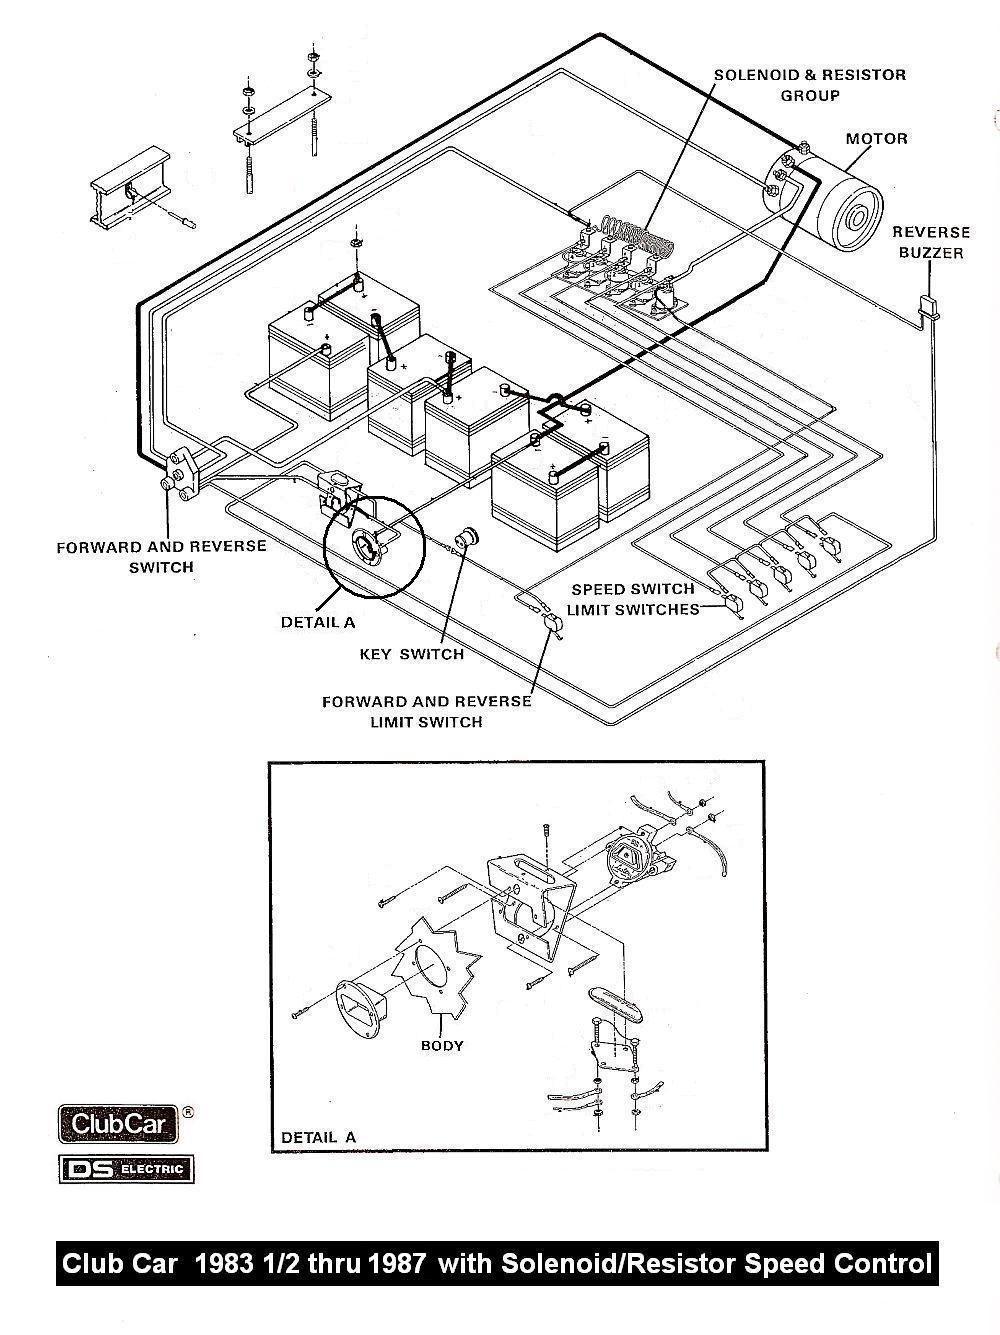 0e8d045370be7682b159825224221faa vintagegolfcartparts com *freezer & crock pot* pinterest 2012 club car precedent wiring diagram at n-0.co